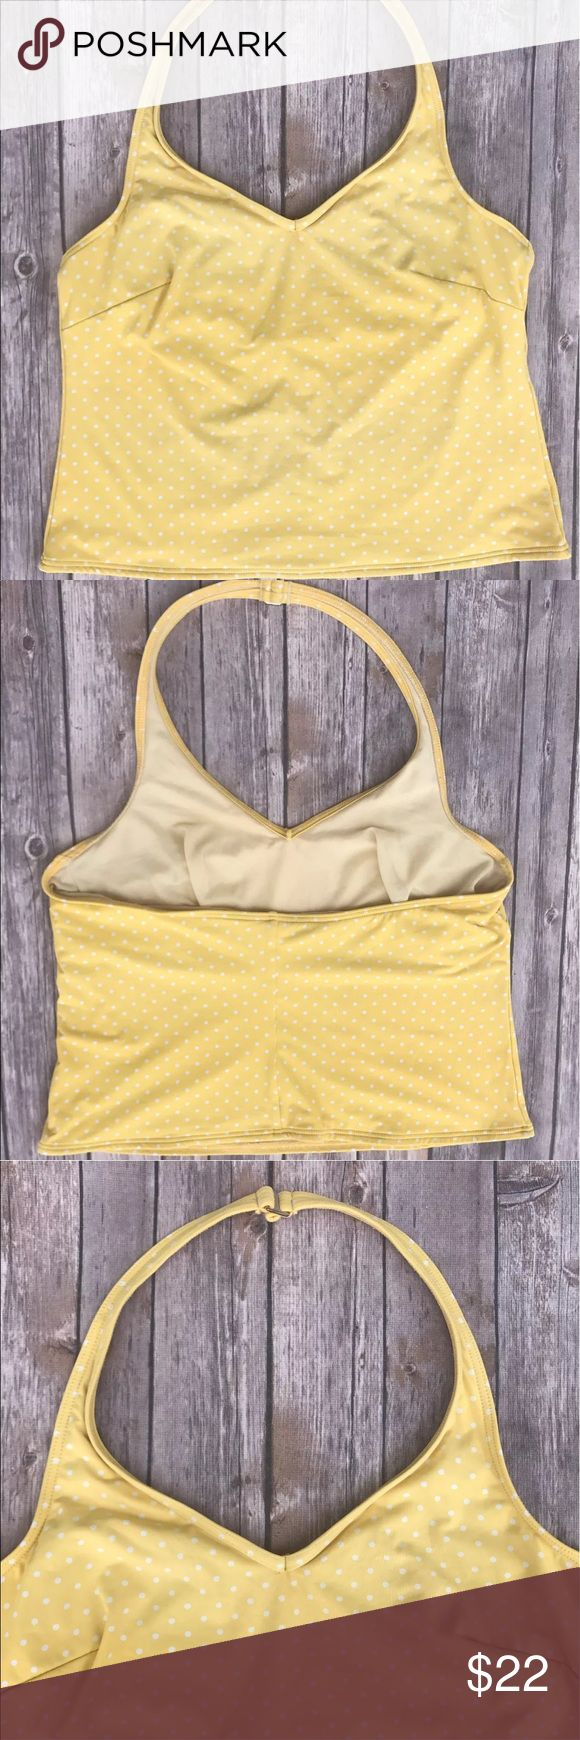 """LANDS END tankini Swimsuit top Polka Dot yellow 16 LANDS END Sz 18 Womens Yellow Polka Dot Tankini Top Swimsuit Plus Halter Bathing   Very cute yellow polka dot Lands End women's tankini bathing suit top. Size 16. Halter top.  Size: 16  Bust: 19""""  Length: 26""""  Built in bra. No padding.  Material: 76% nylon/24% spandex Lands' End Swim Bikinis"""